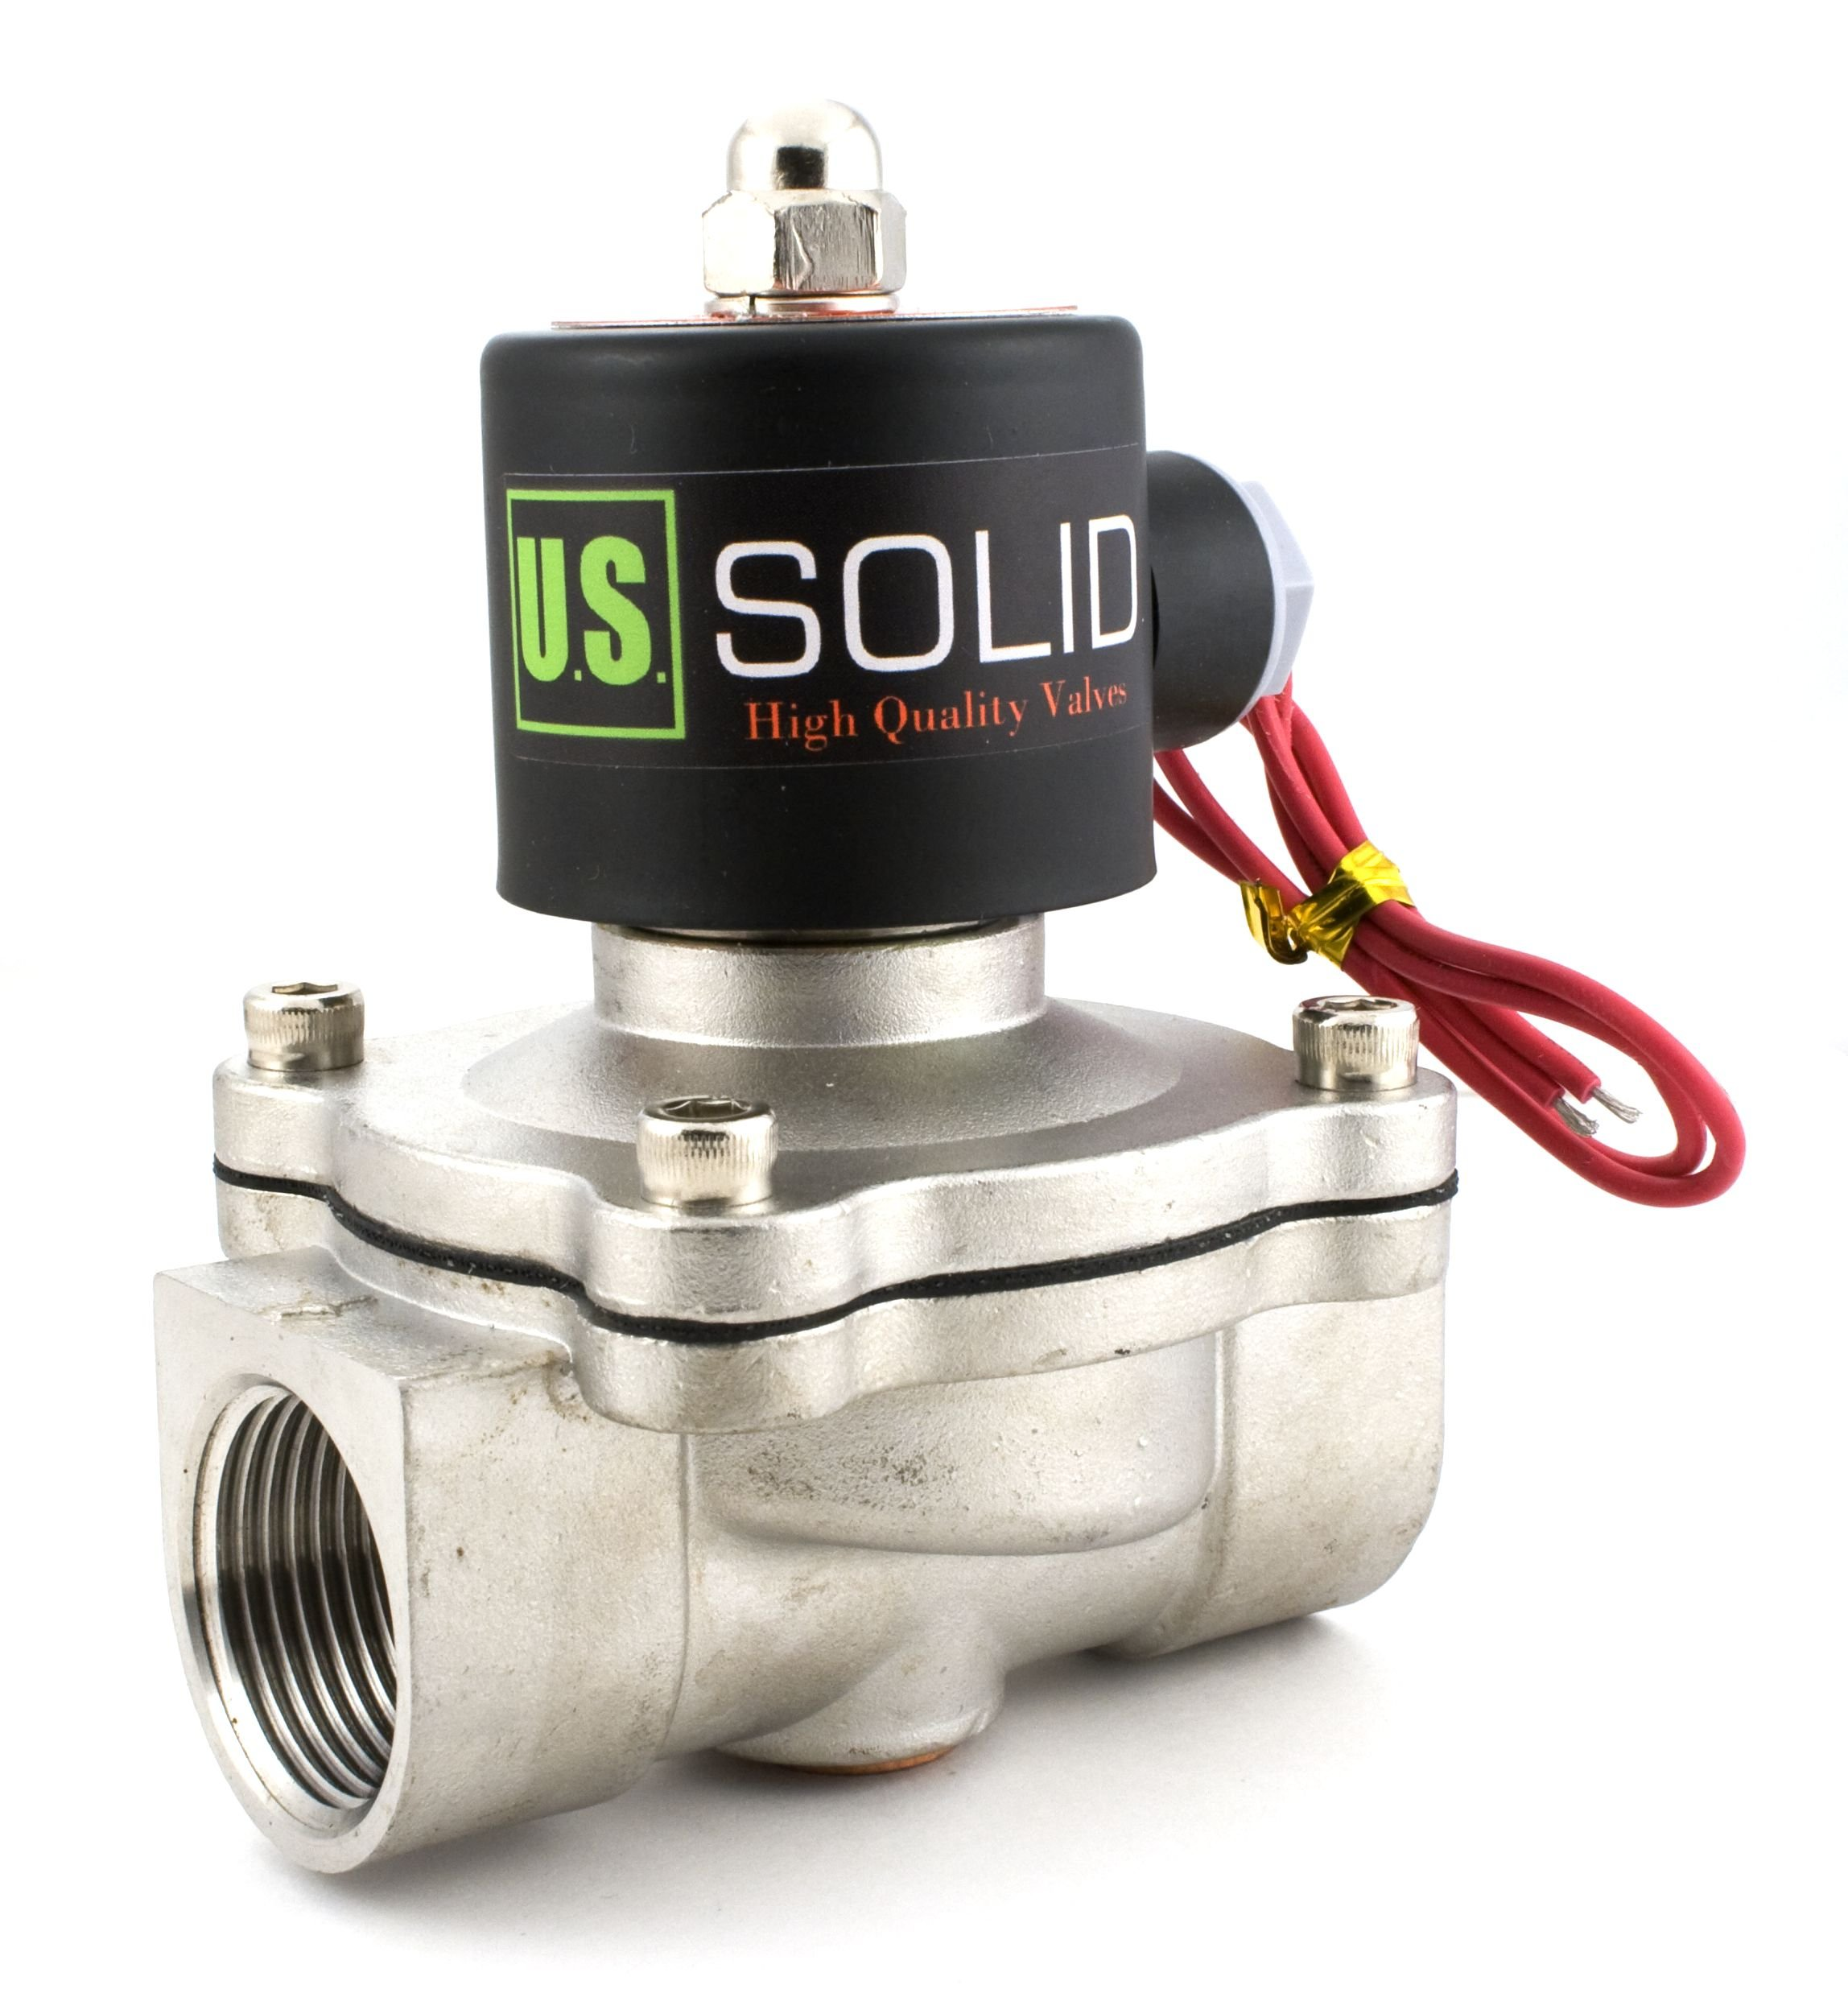 1'' Stainless Steel Electric Solenoid Valve 110VAC Normally Closed Air Water